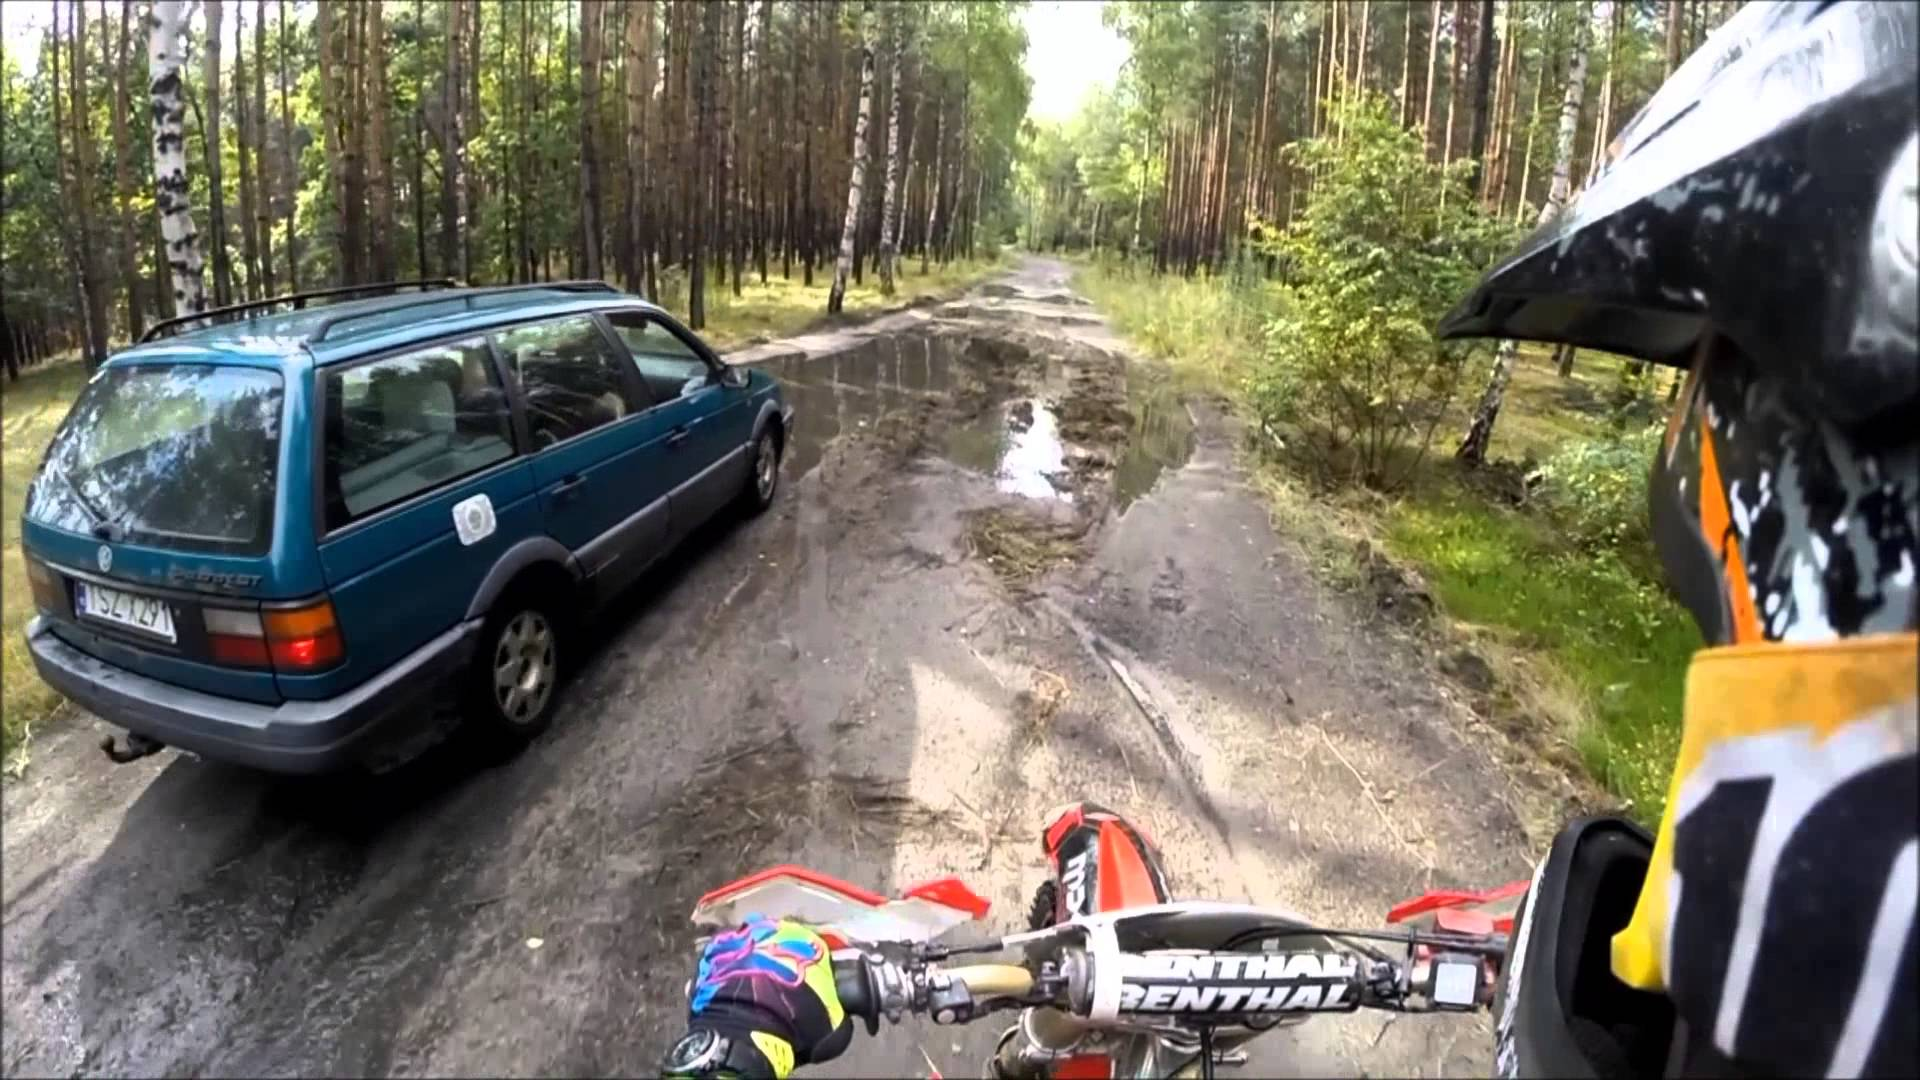 WASZE FILMY: Enduro racing - strange actions, mishaps and accidents !